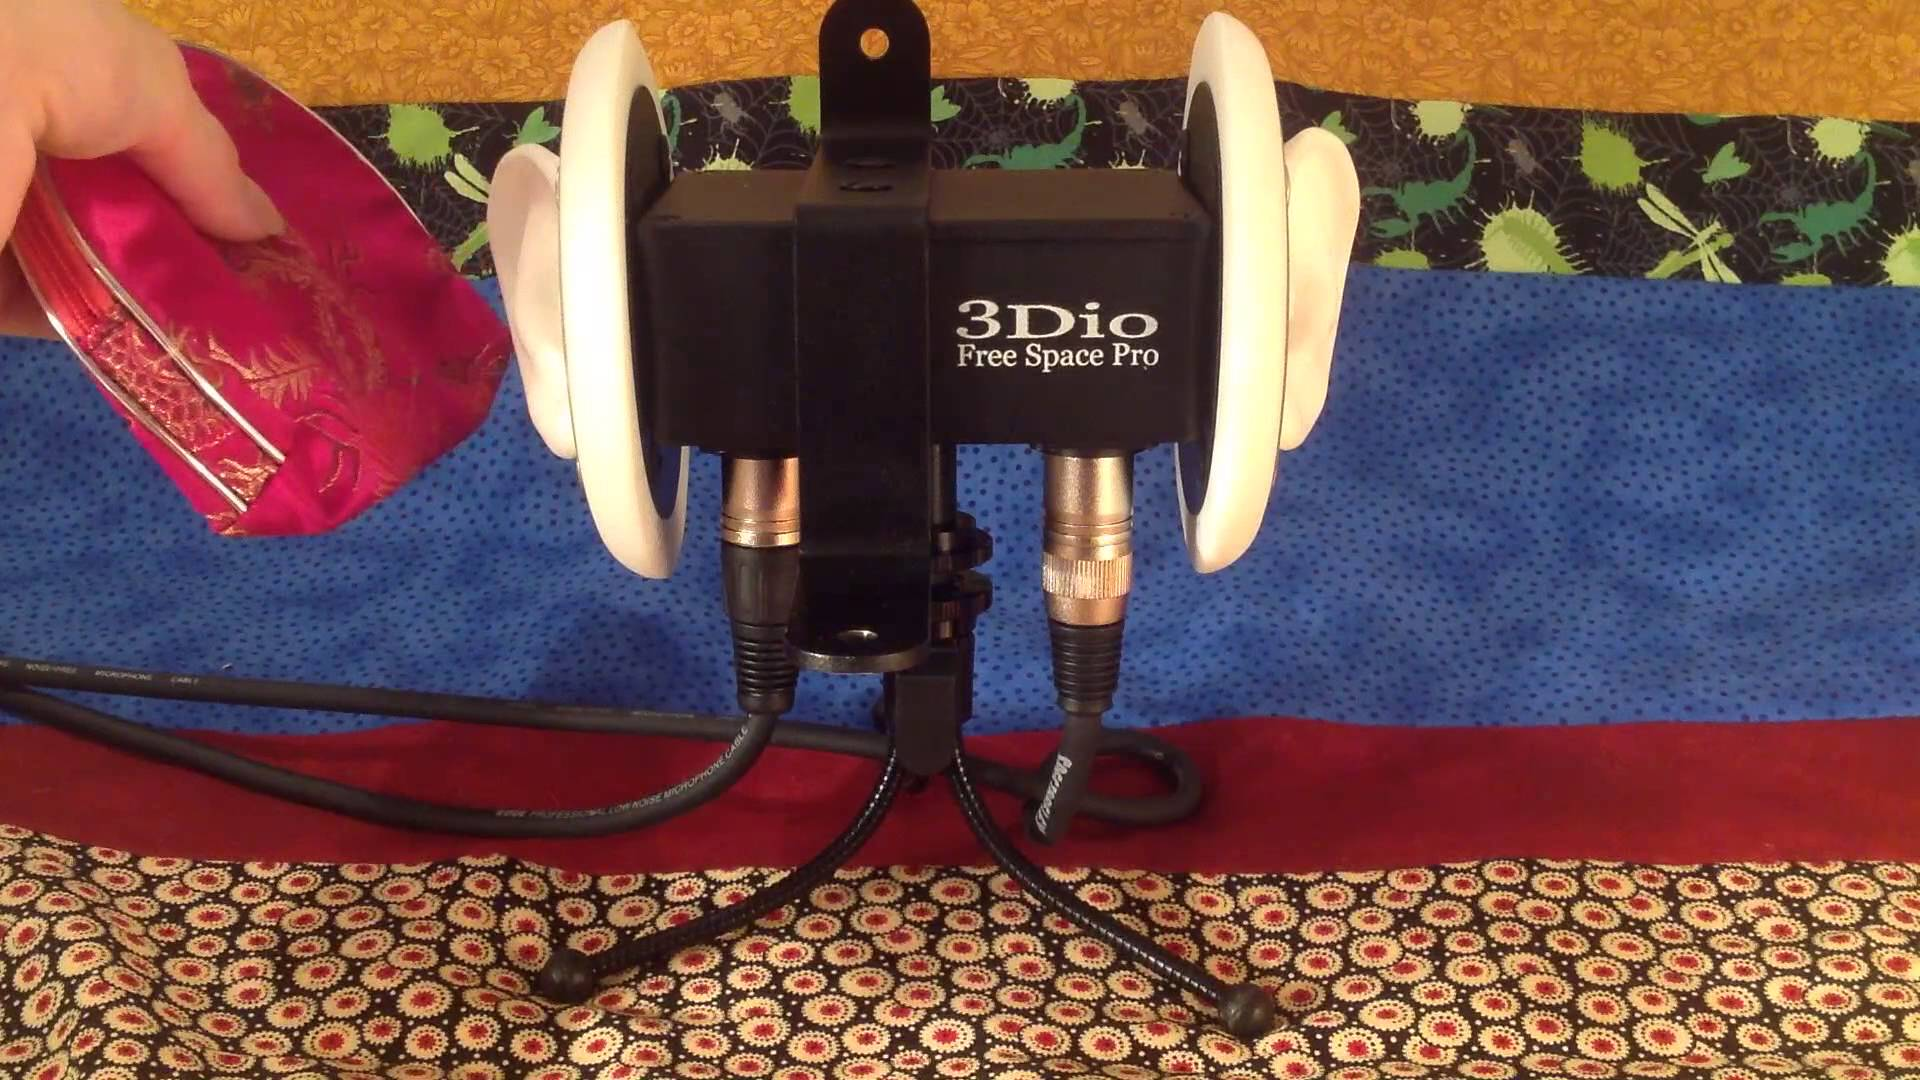 Where Can You Buy the 3Dio Free Space Pro Binaural Microphone?